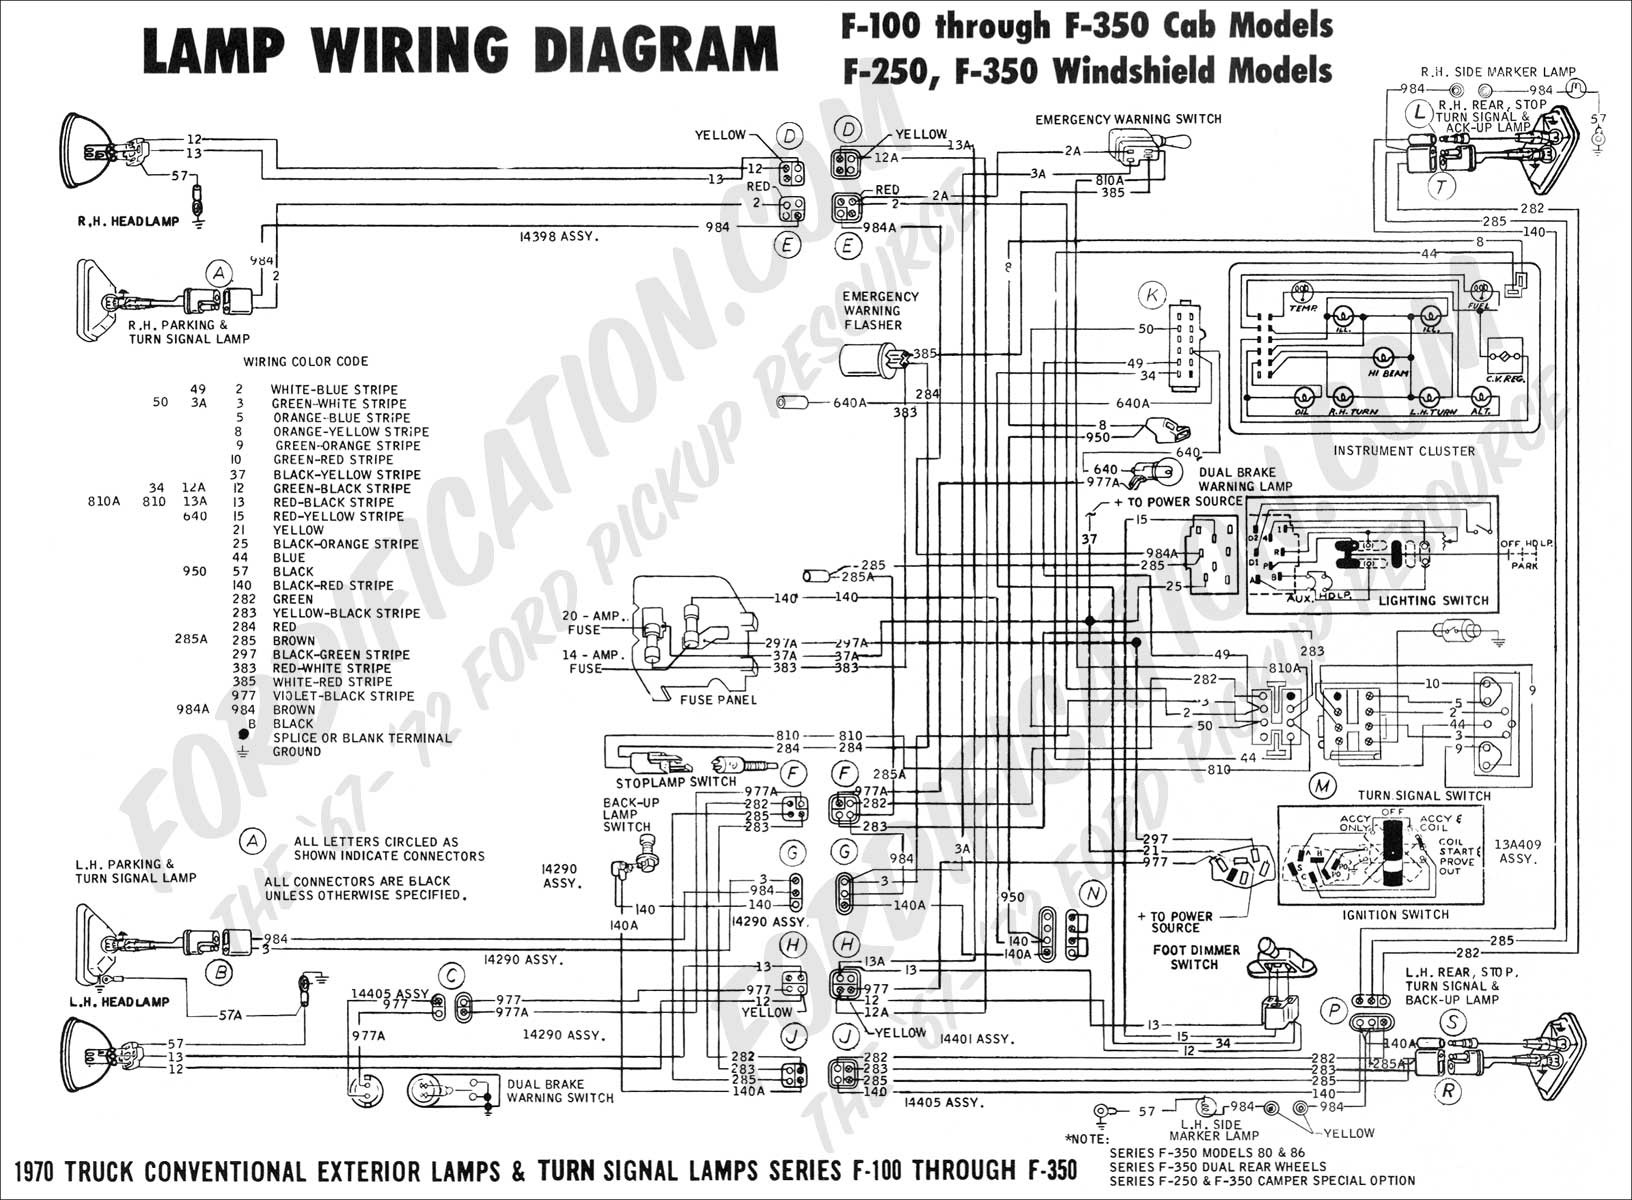 1965 falcon wiring harness wiring library1970 ford f100 wiring harness schematic diagrams rh ogmconsulting co